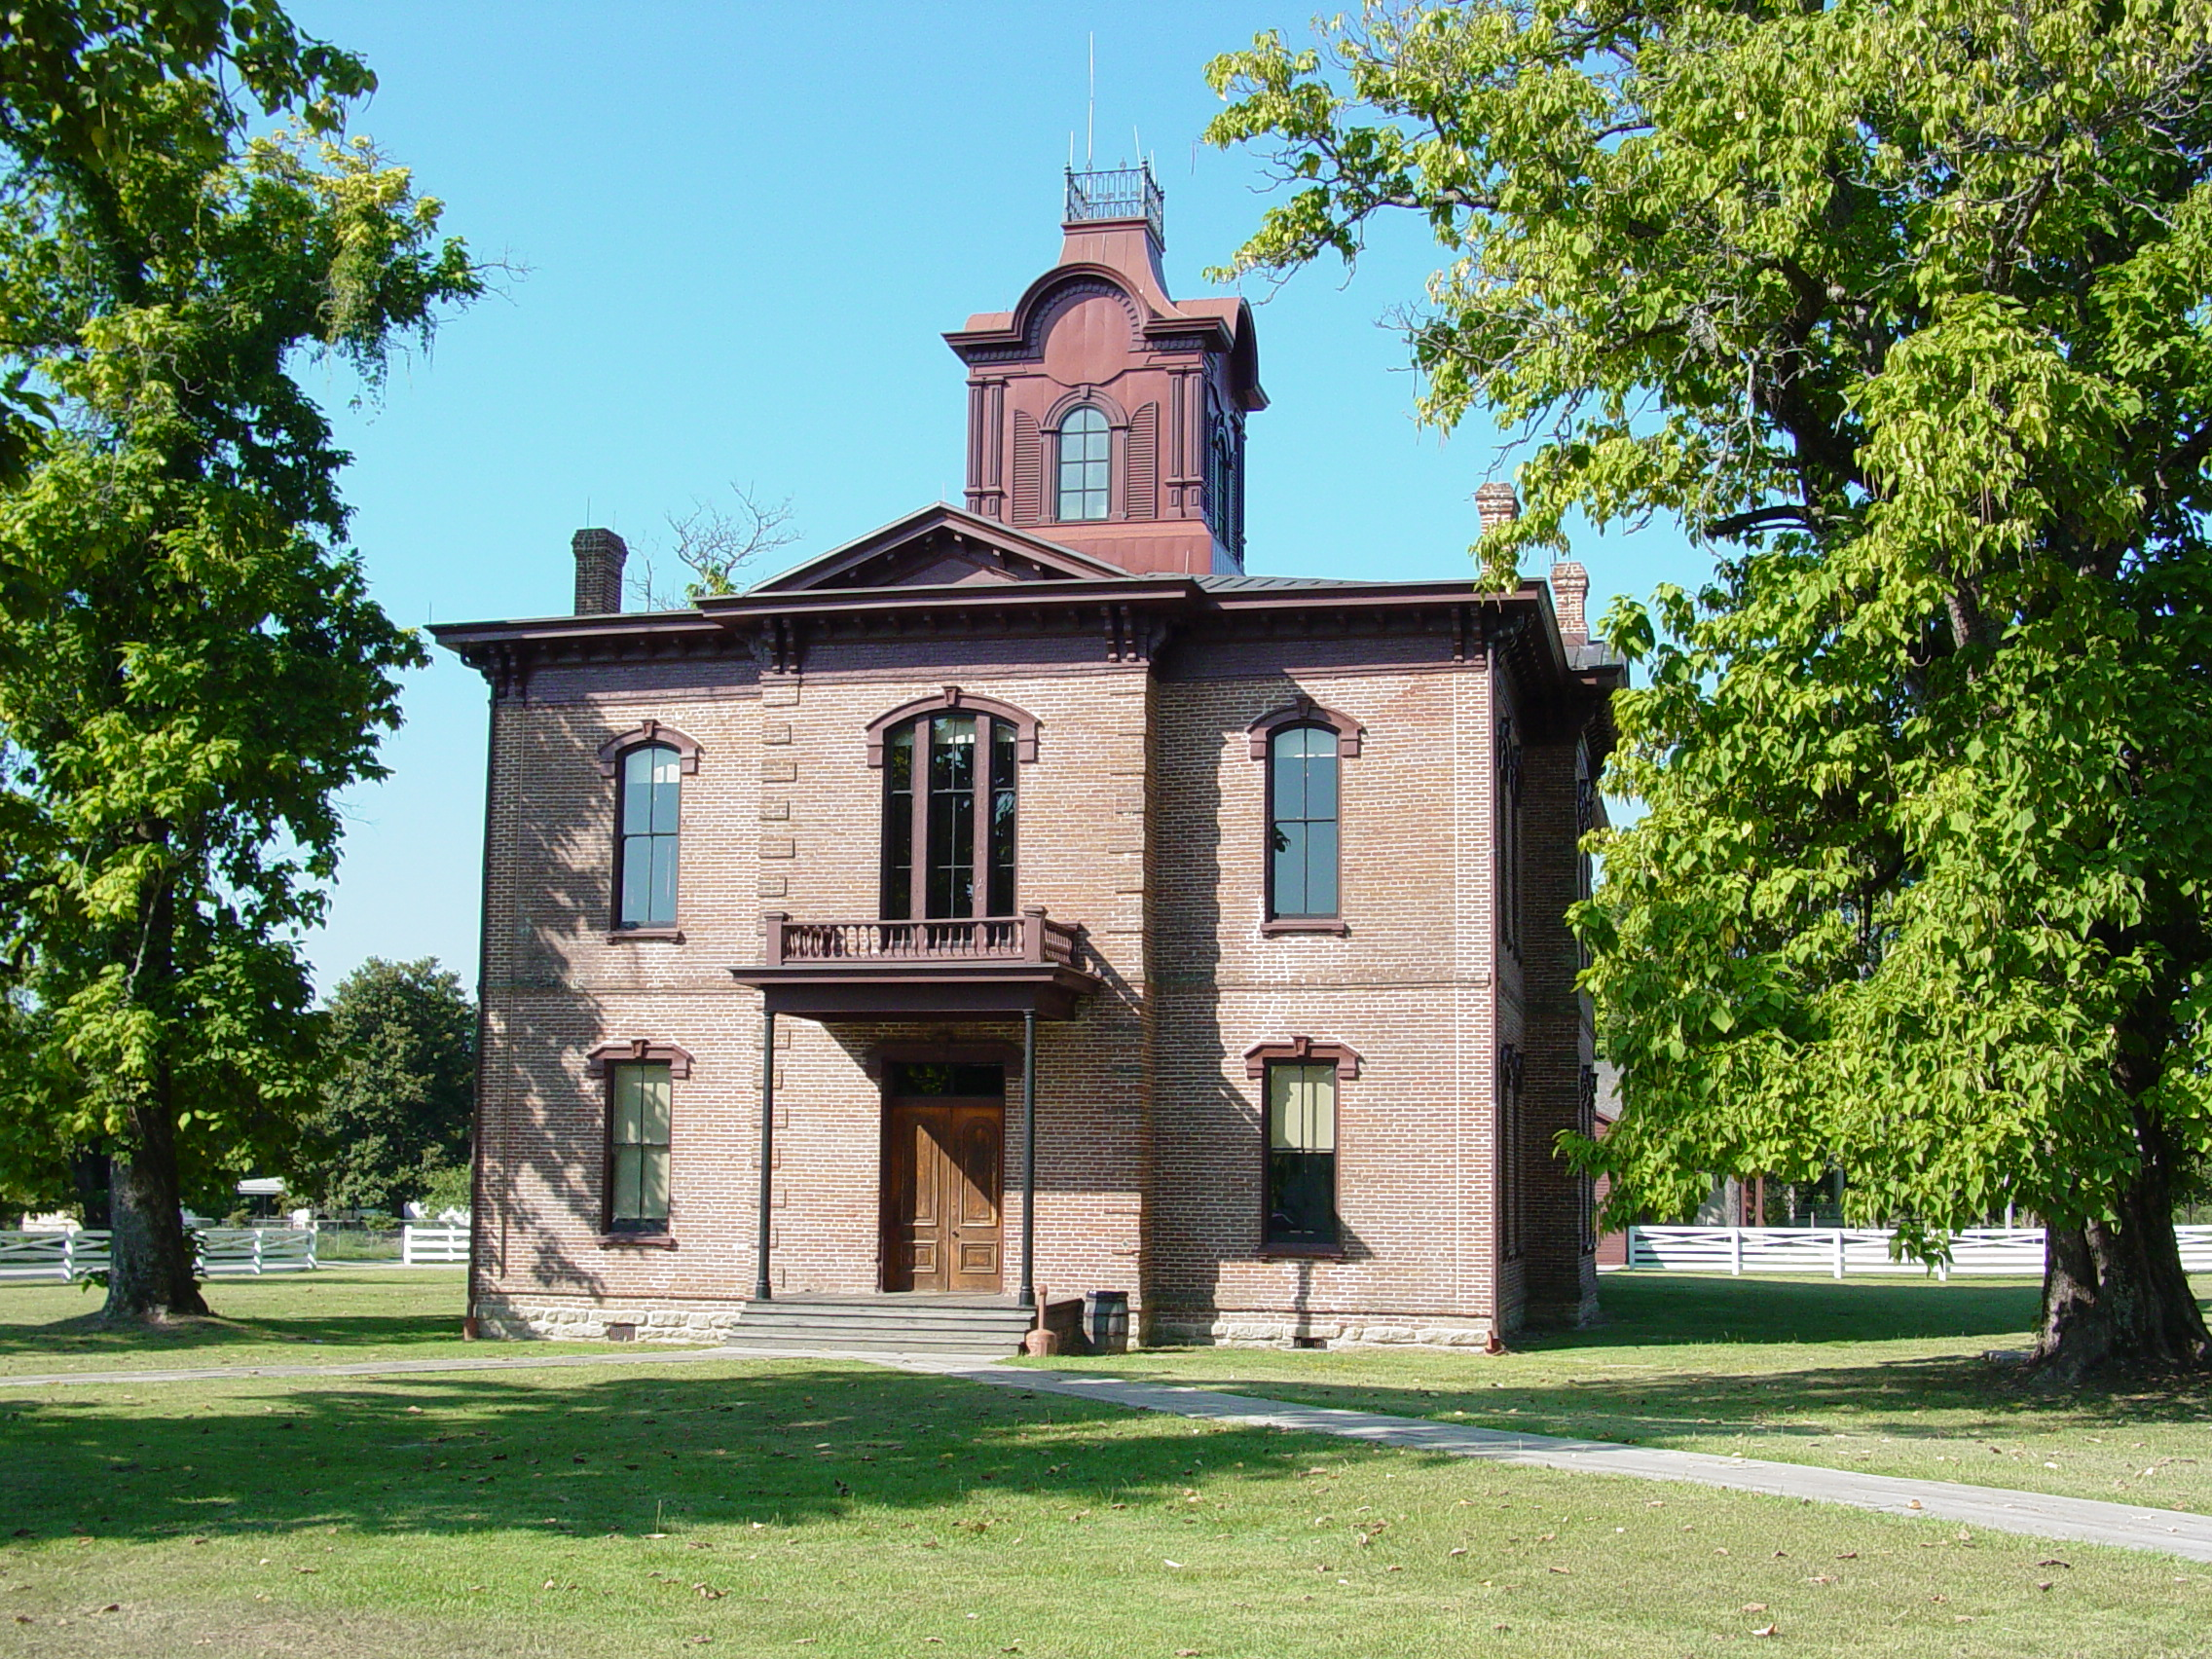 This grand, circa 1874 building was the county courthouse for Hempstead County from 1874 to 1939. It was the last courthouse to be built in Washington. It now serves as the Historic Washington State Park's  visitor center and gift shop.